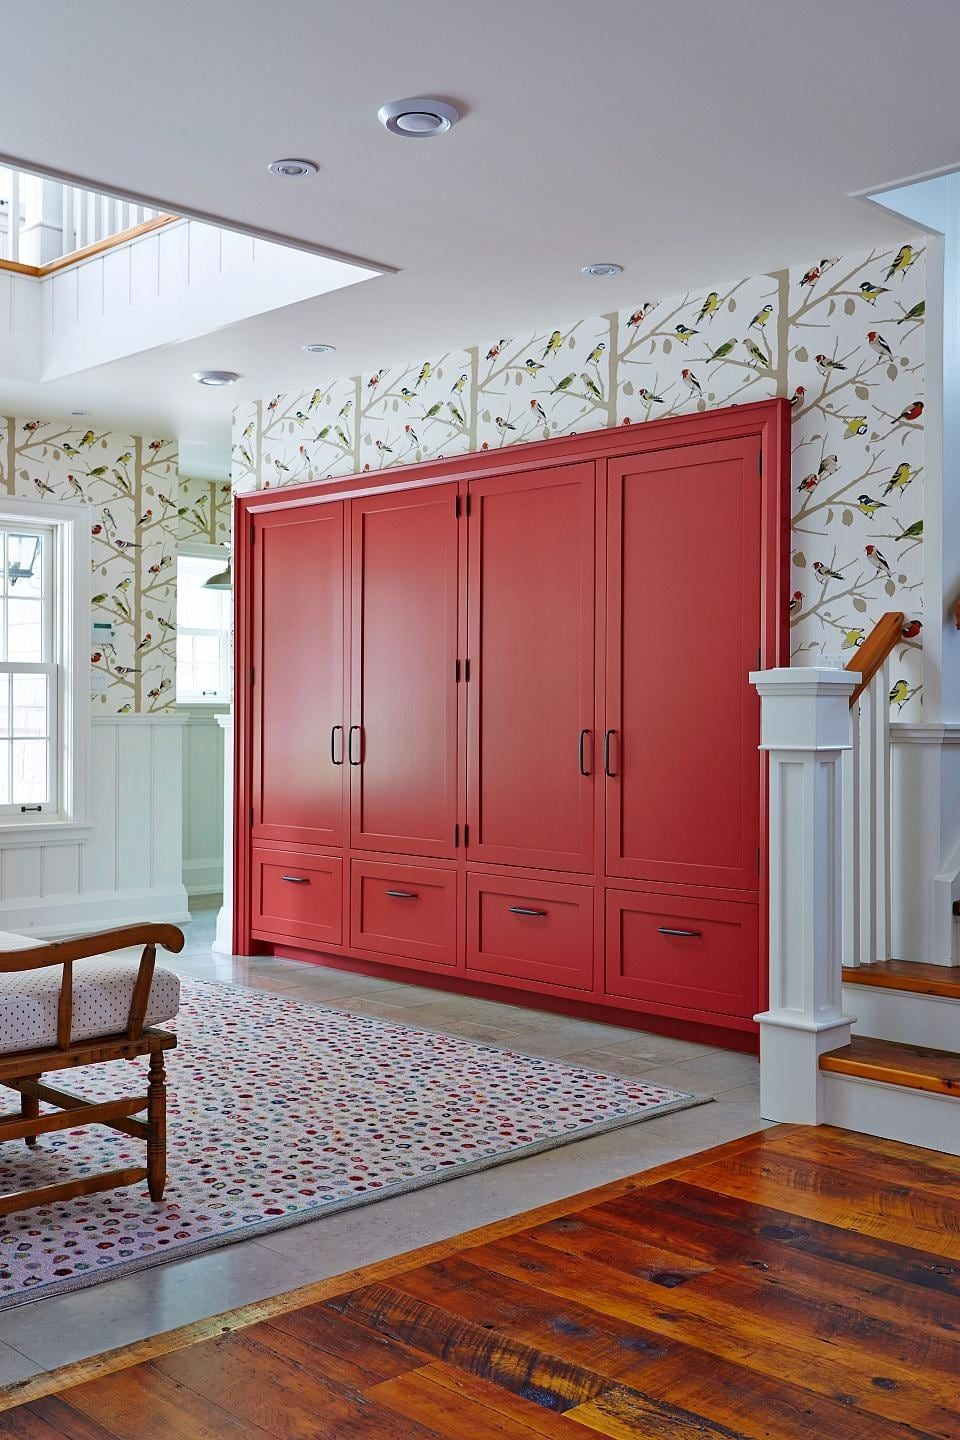 Attractive Family Friendly Beach House   Bold Red In Wall Storage Cabinet